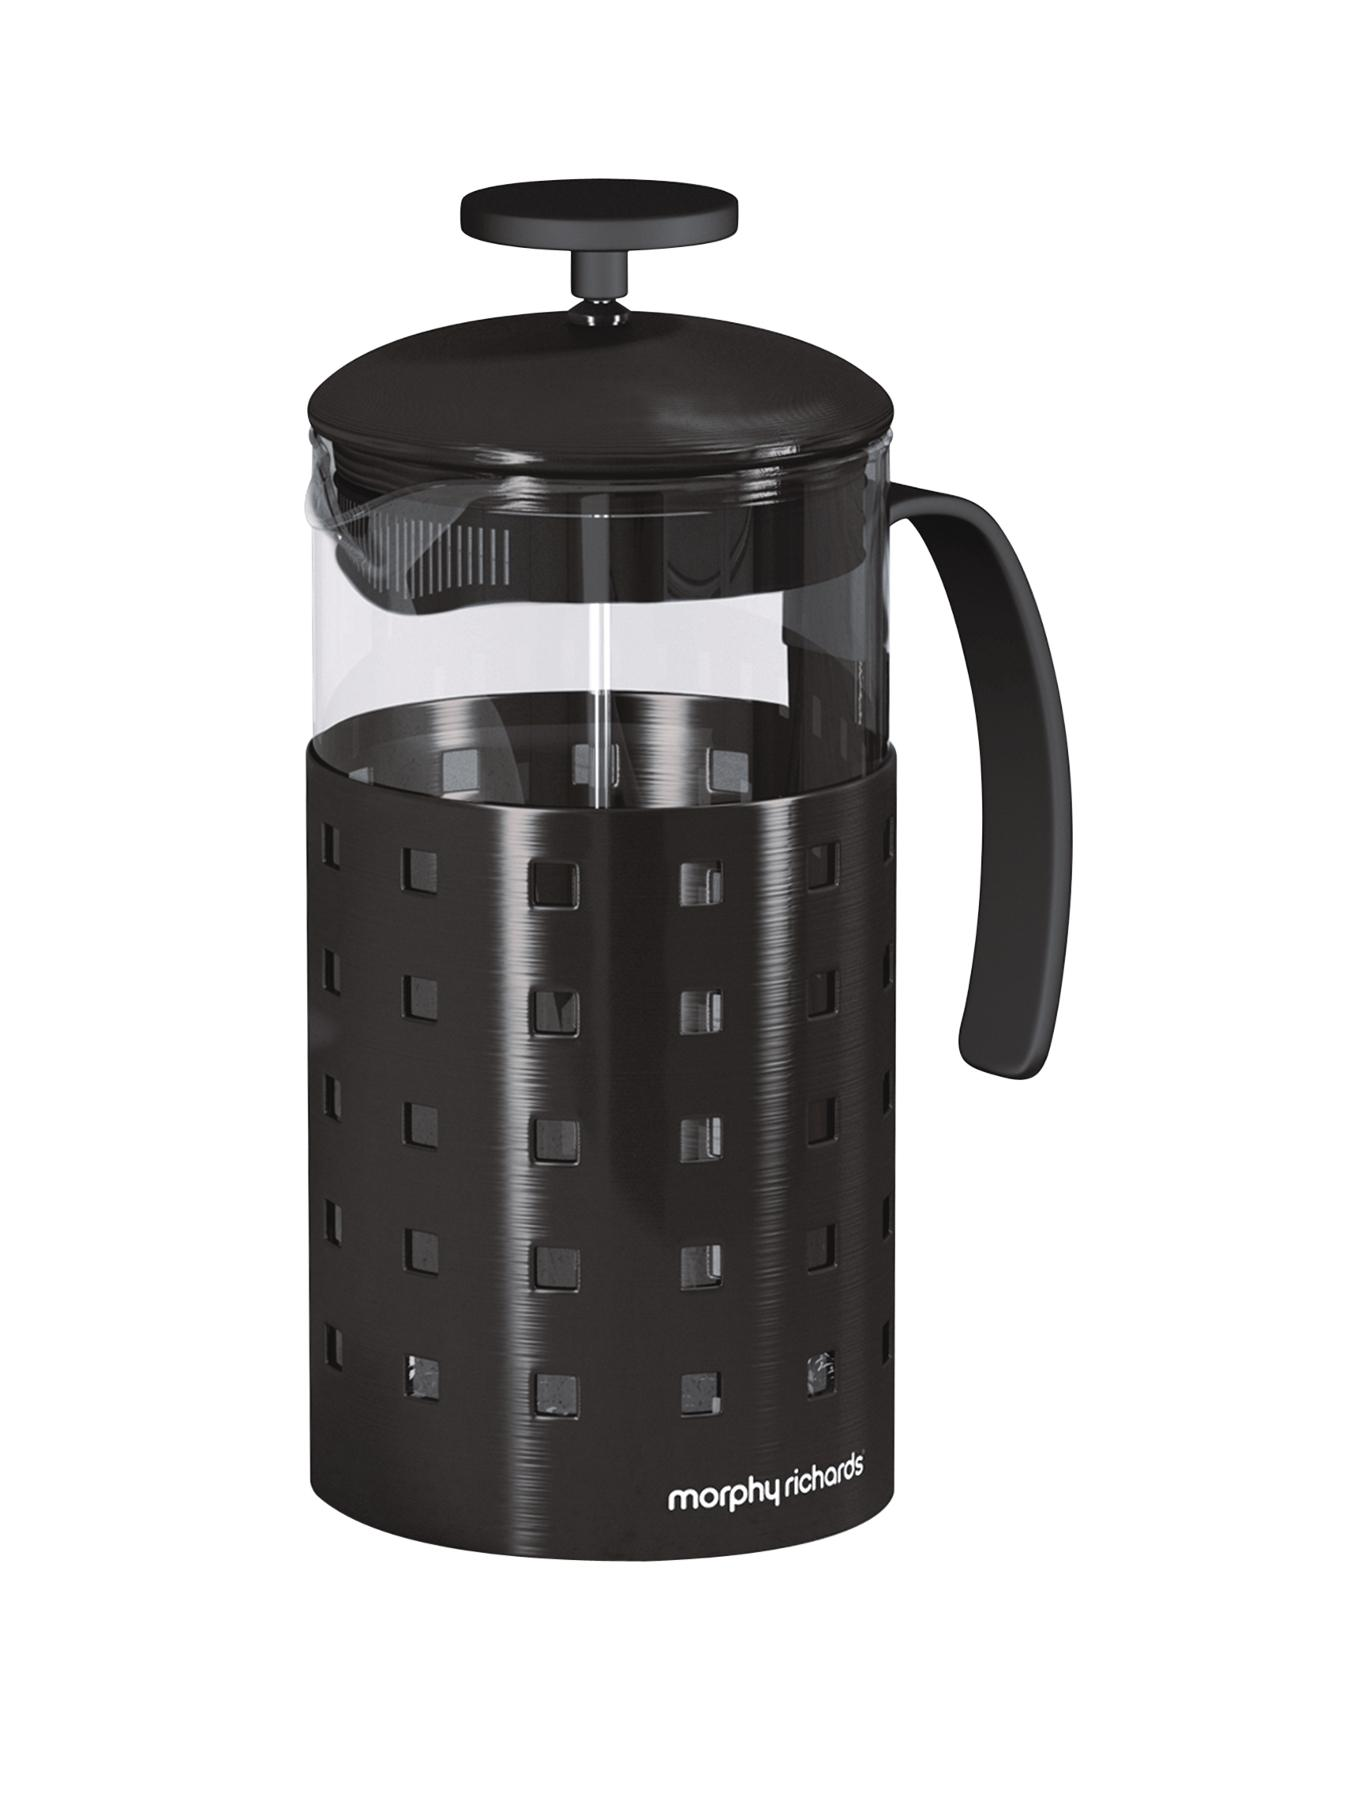 Morphy Richards 8 Cup Cafetiere 1000 ml - Black